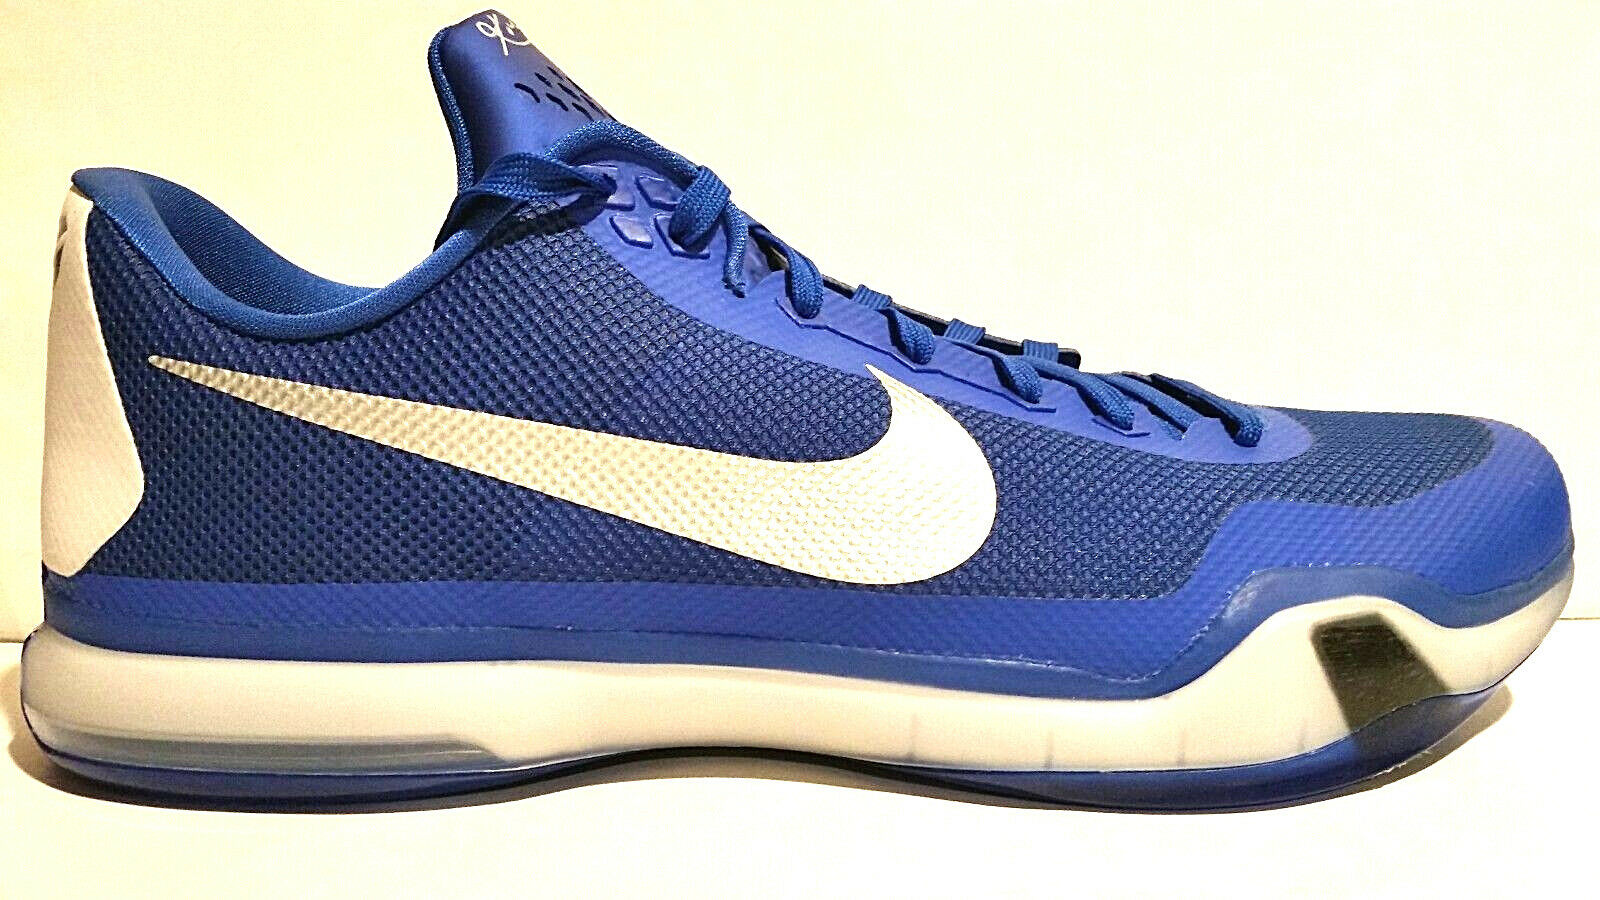 RARE SAMPLE NIKE KOBE X LOW GAME BLUE WHITE TB PE 18 813030-402 KENTUKY DUKE